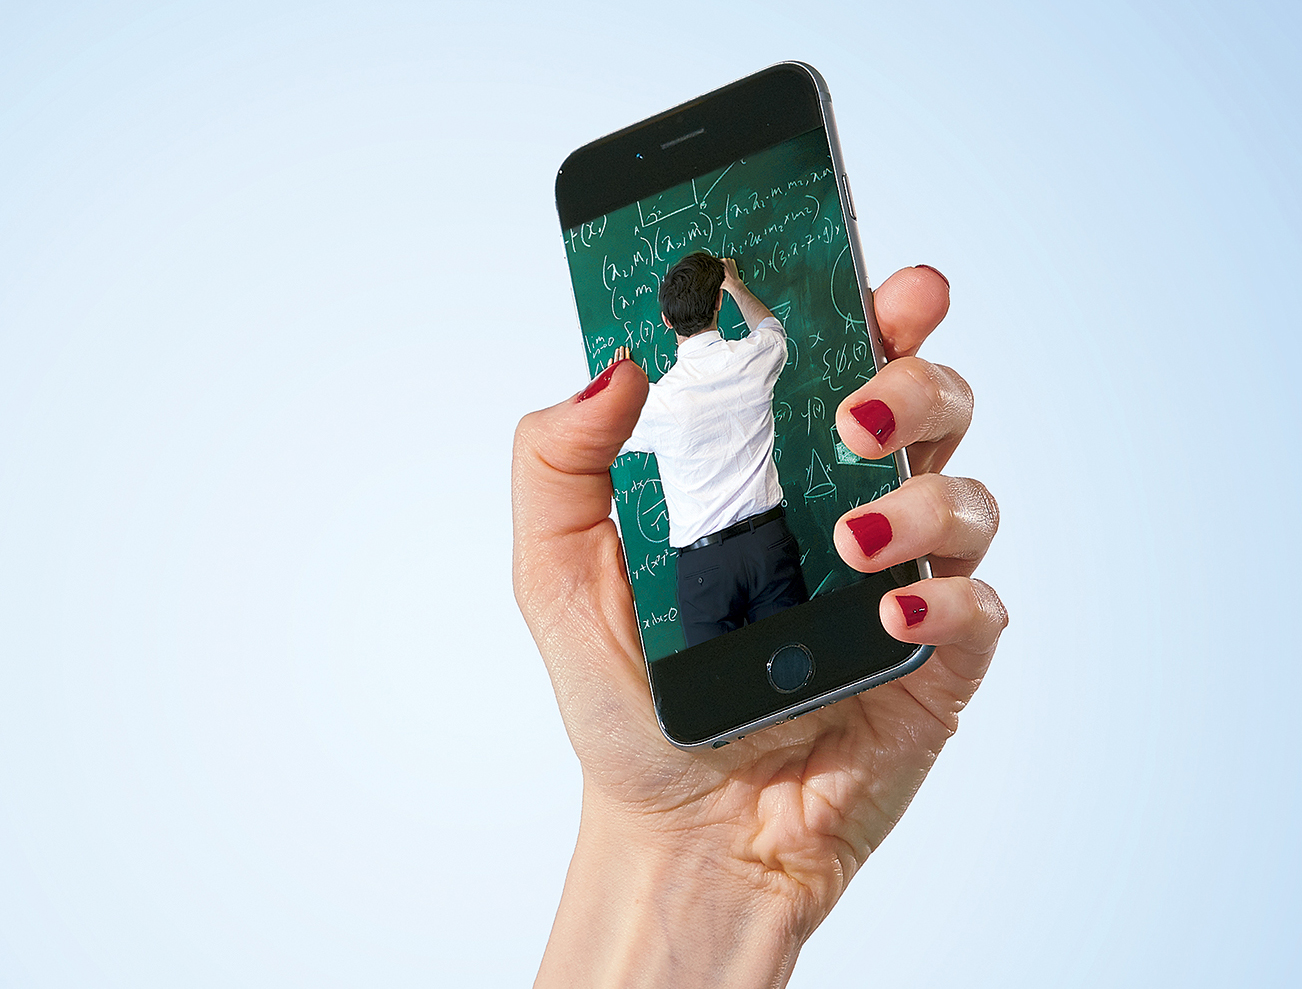 Photograph of Smartphone by Jeff Elkins. Inset Photograph by Istock.